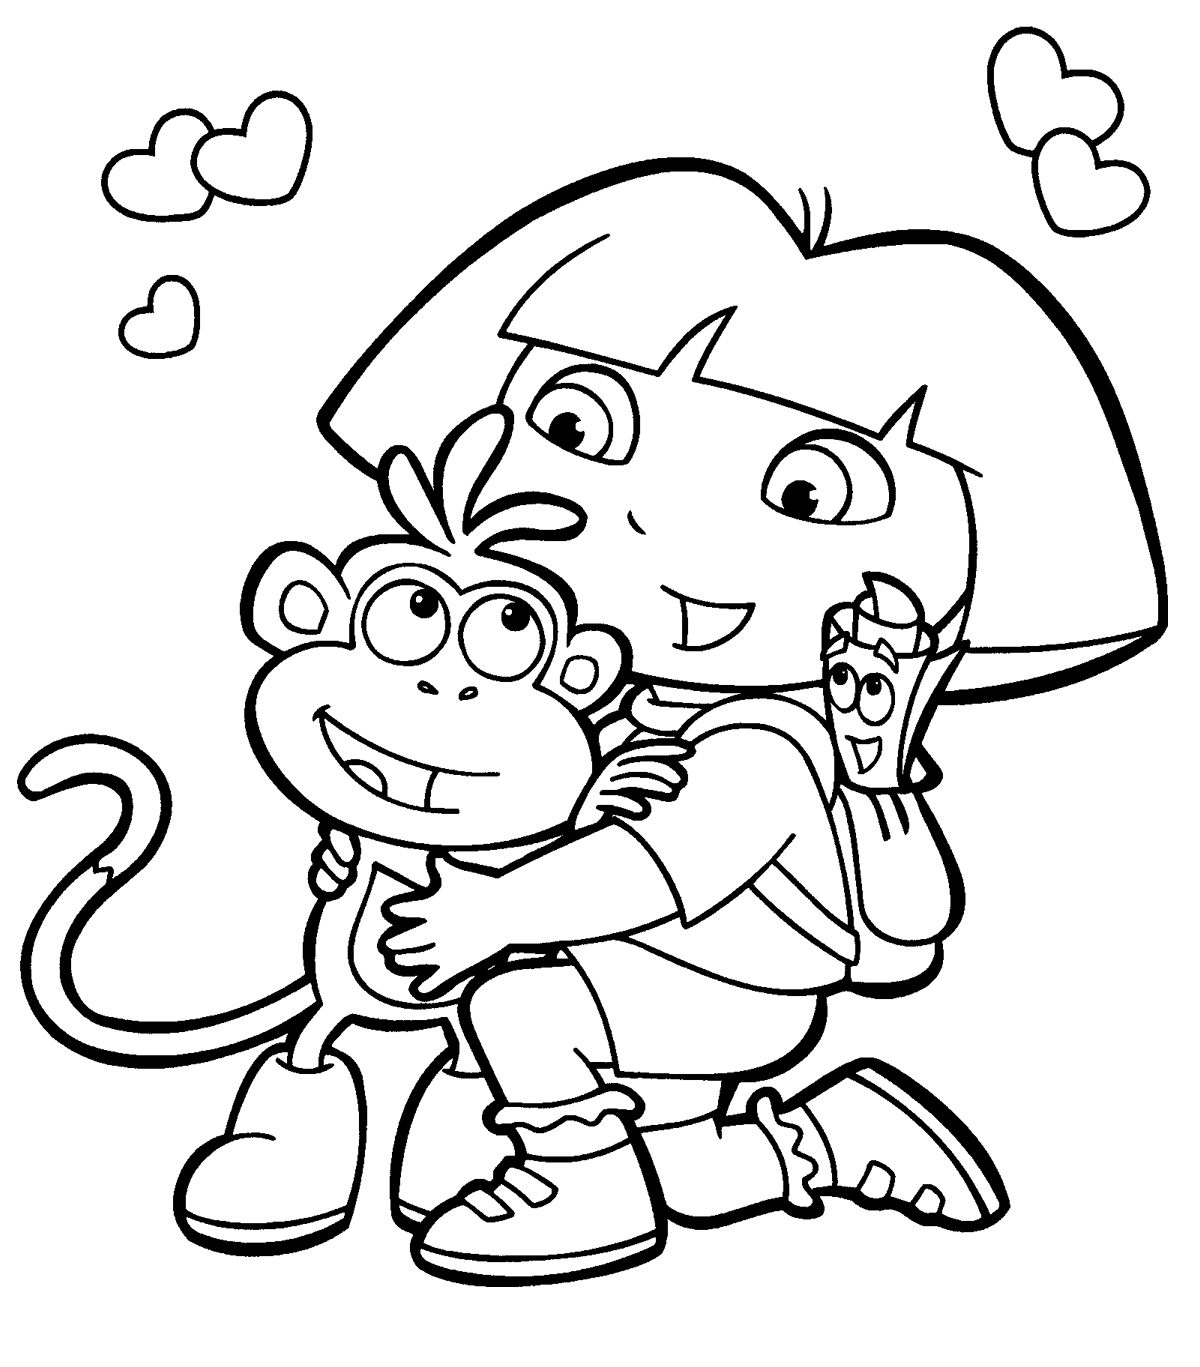 march 2013 cartoon coloring pages